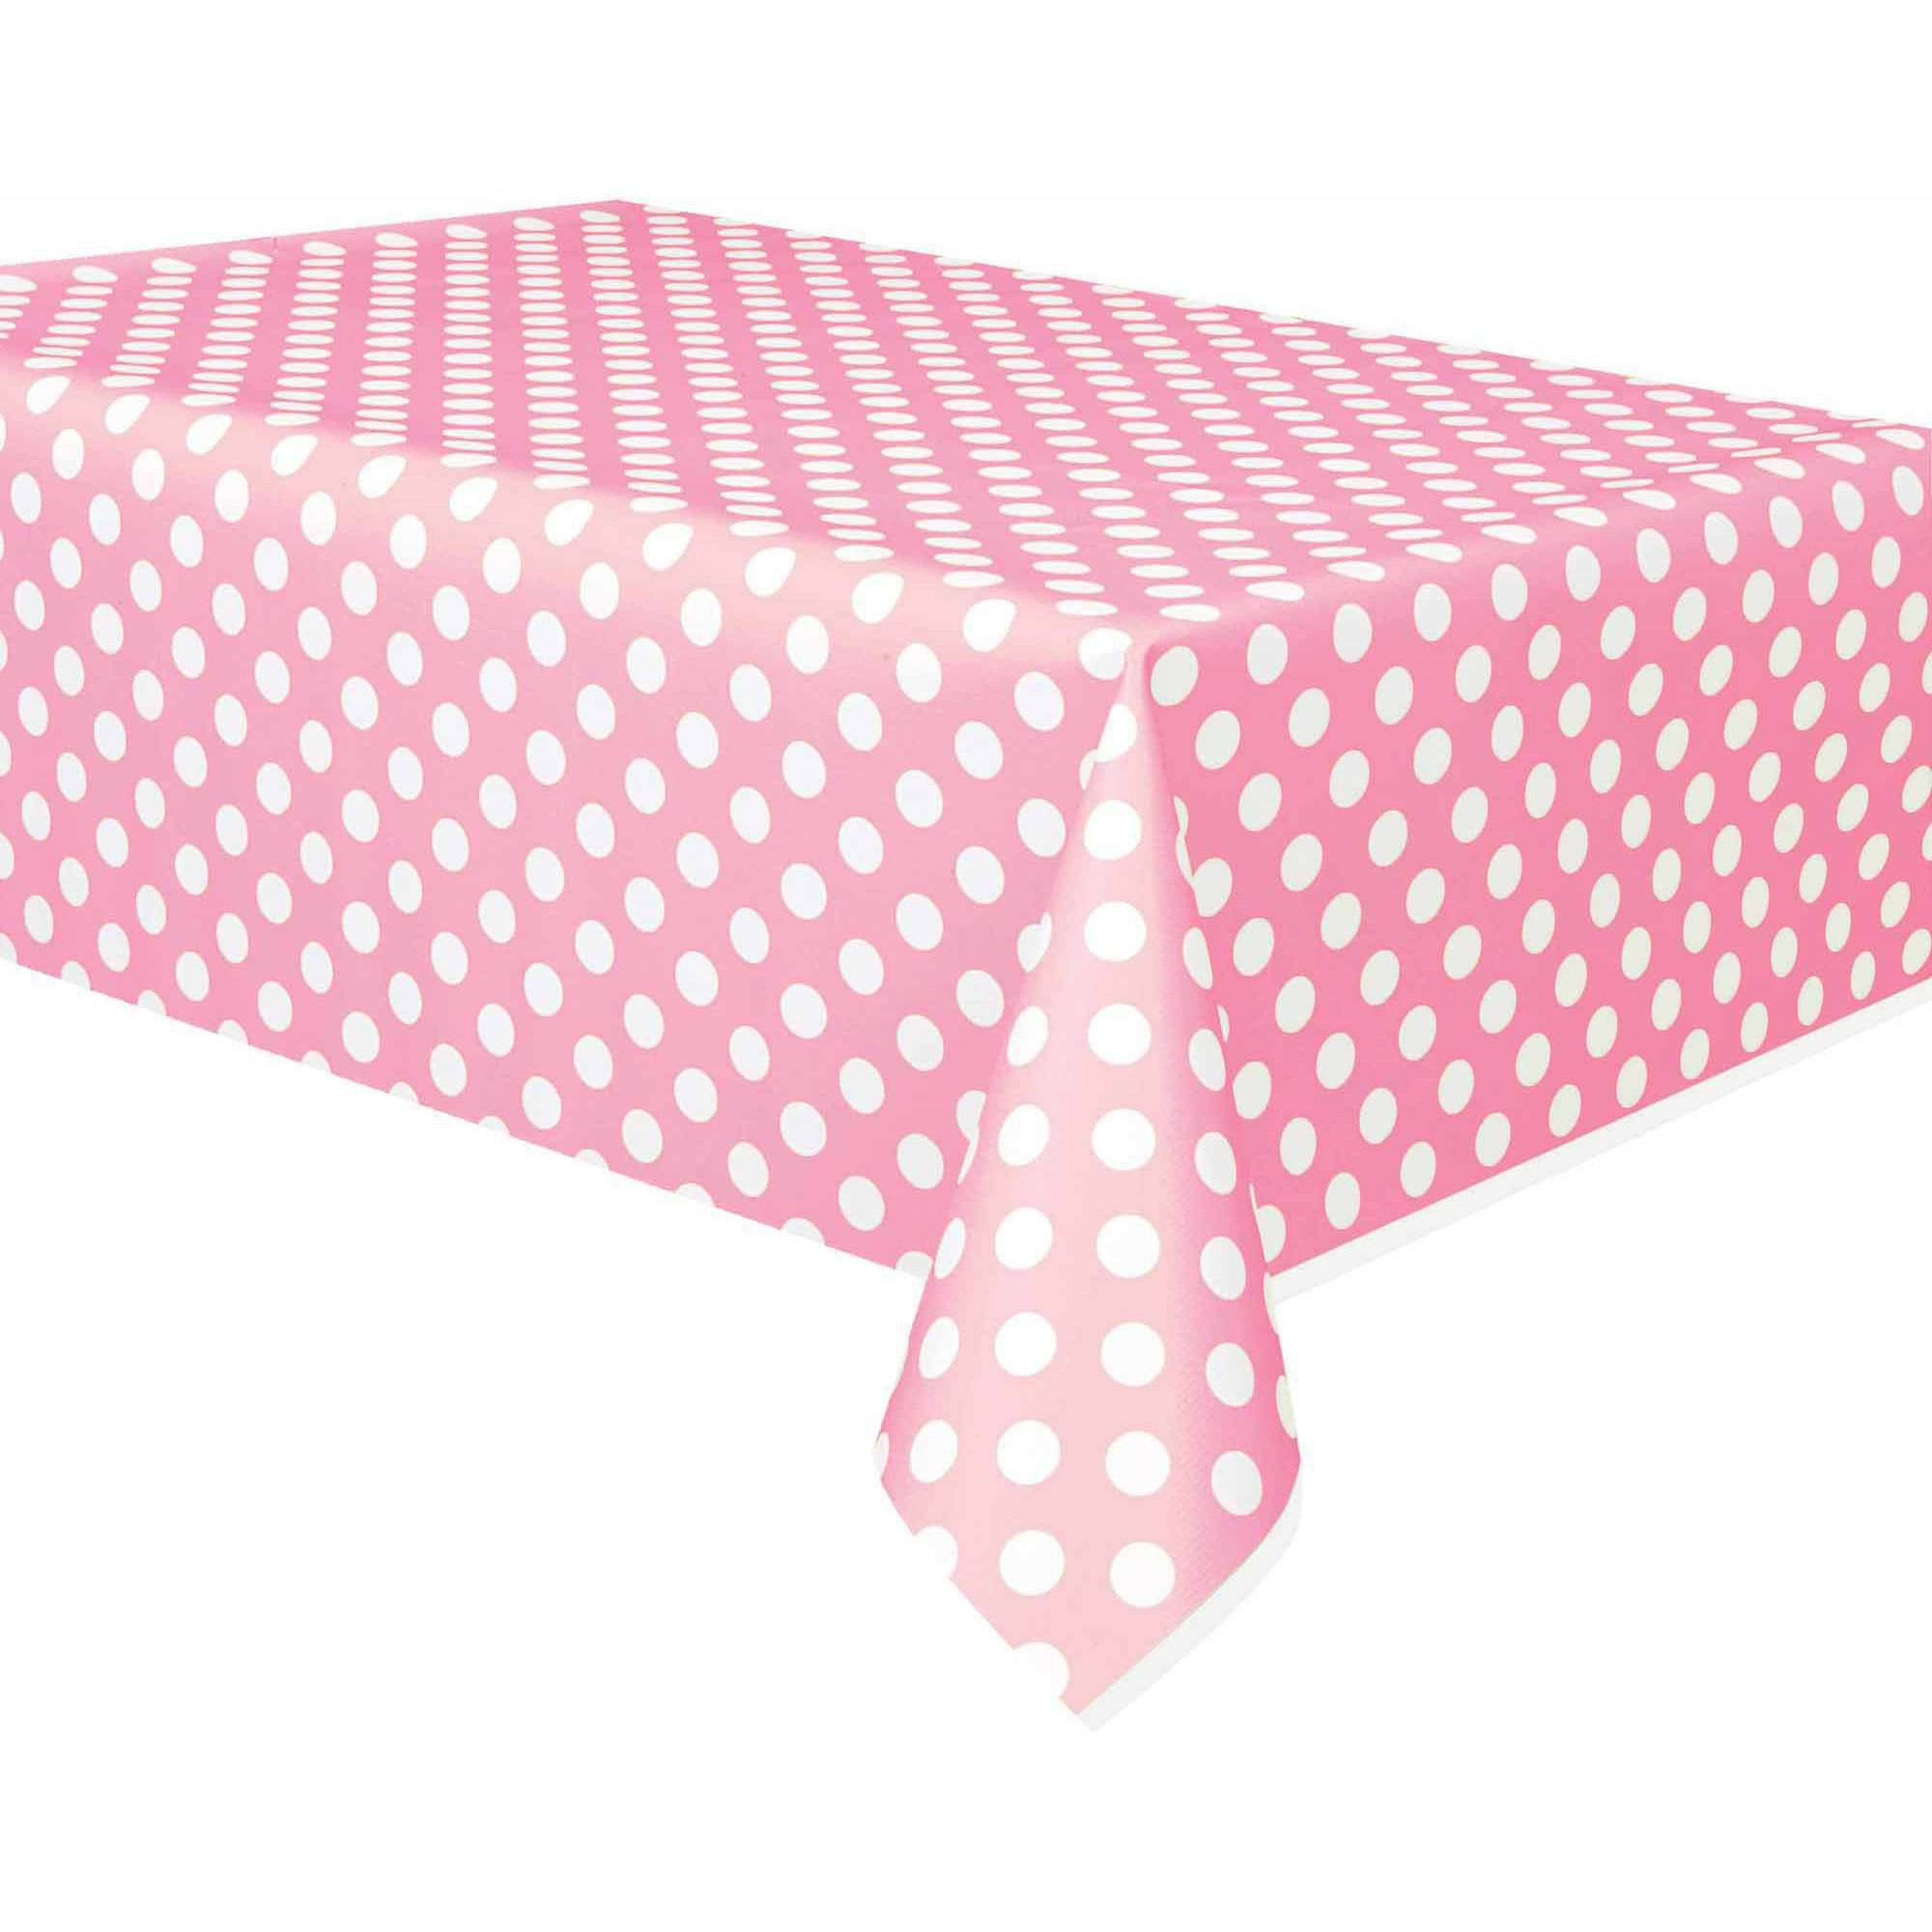 "Light Pink Polka Dots Table Cover, 108"" x 54"""